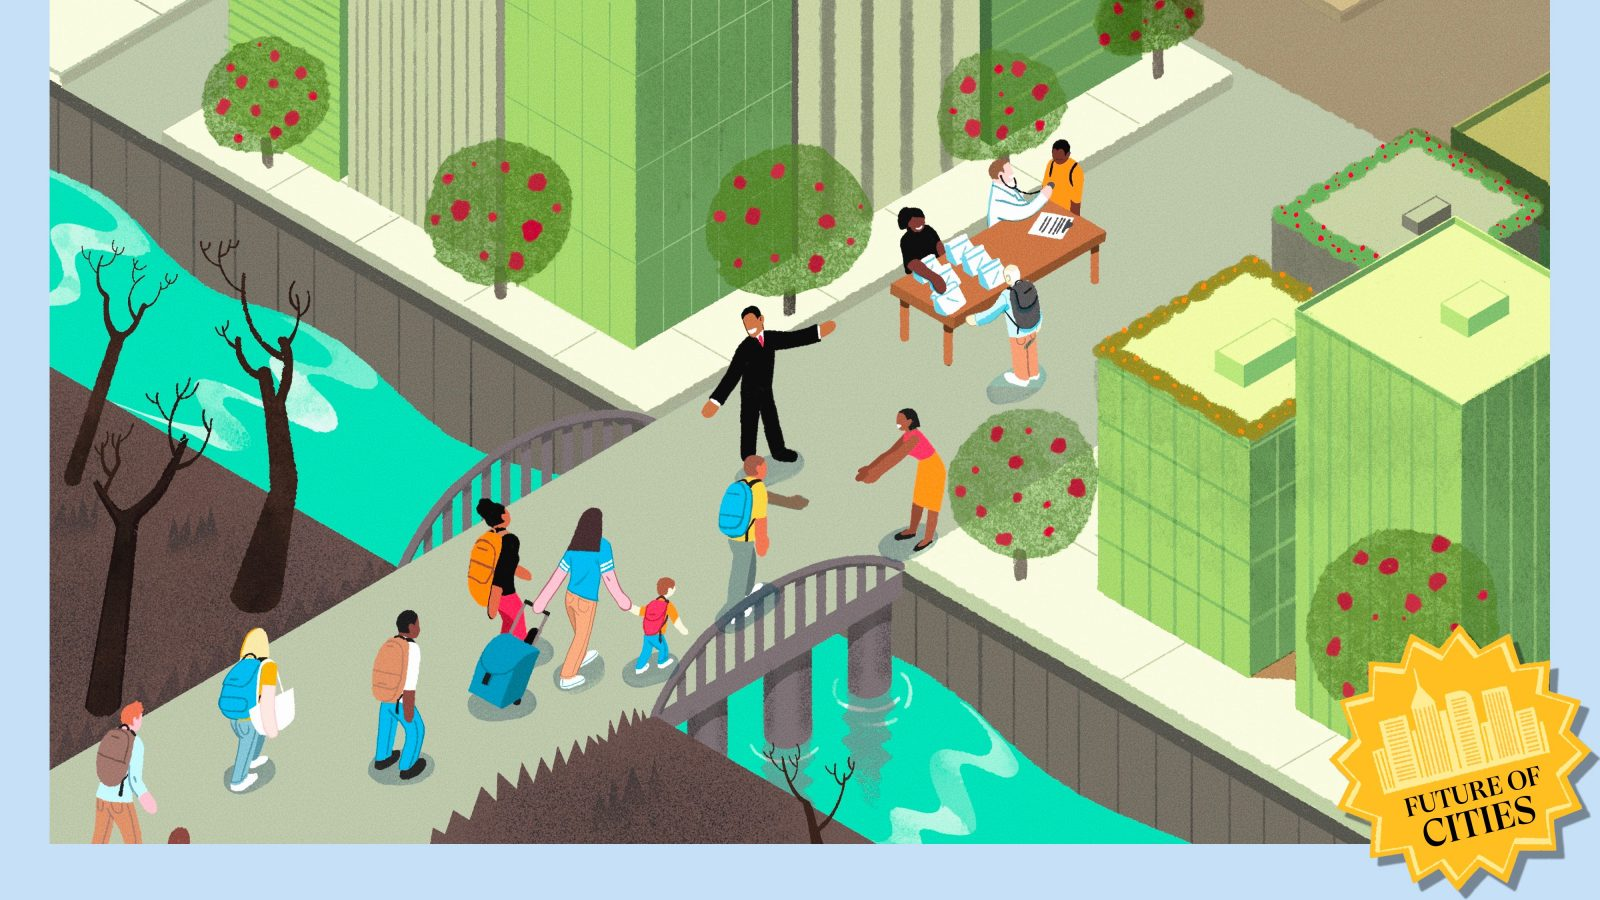 Illustration of a green city welcoming climate migrants